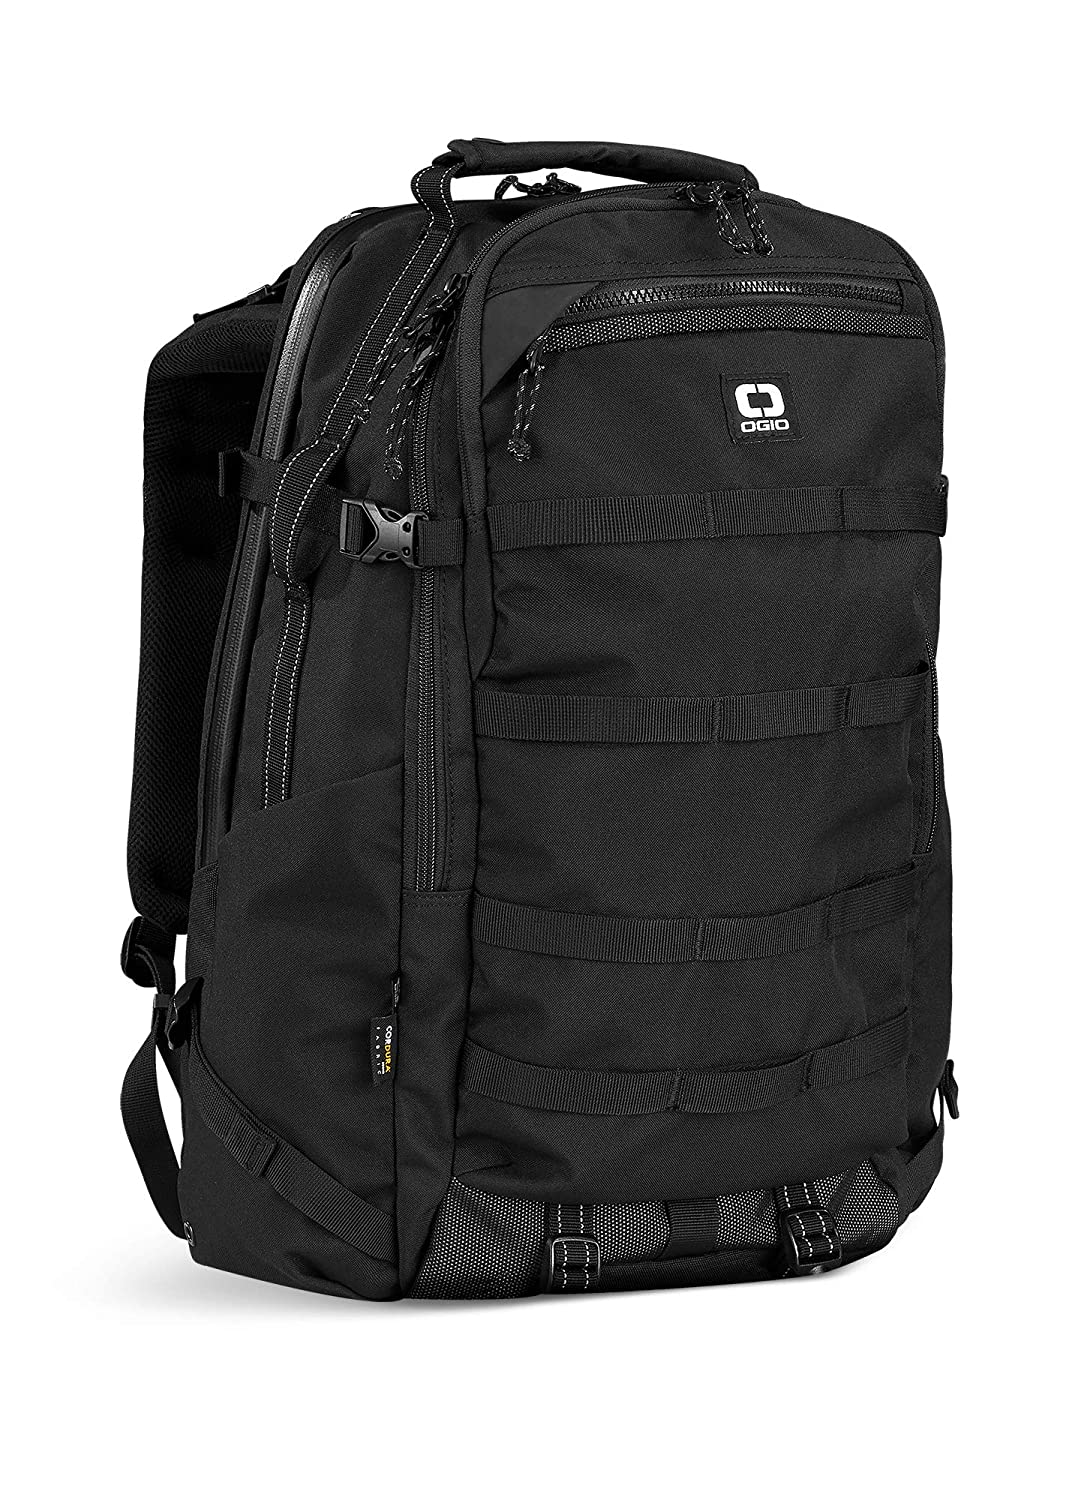 e23542c484 Amazon.com: OGIO ALPHA Convoy 525 Laptop Backpack, Black: Sports & Outdoors